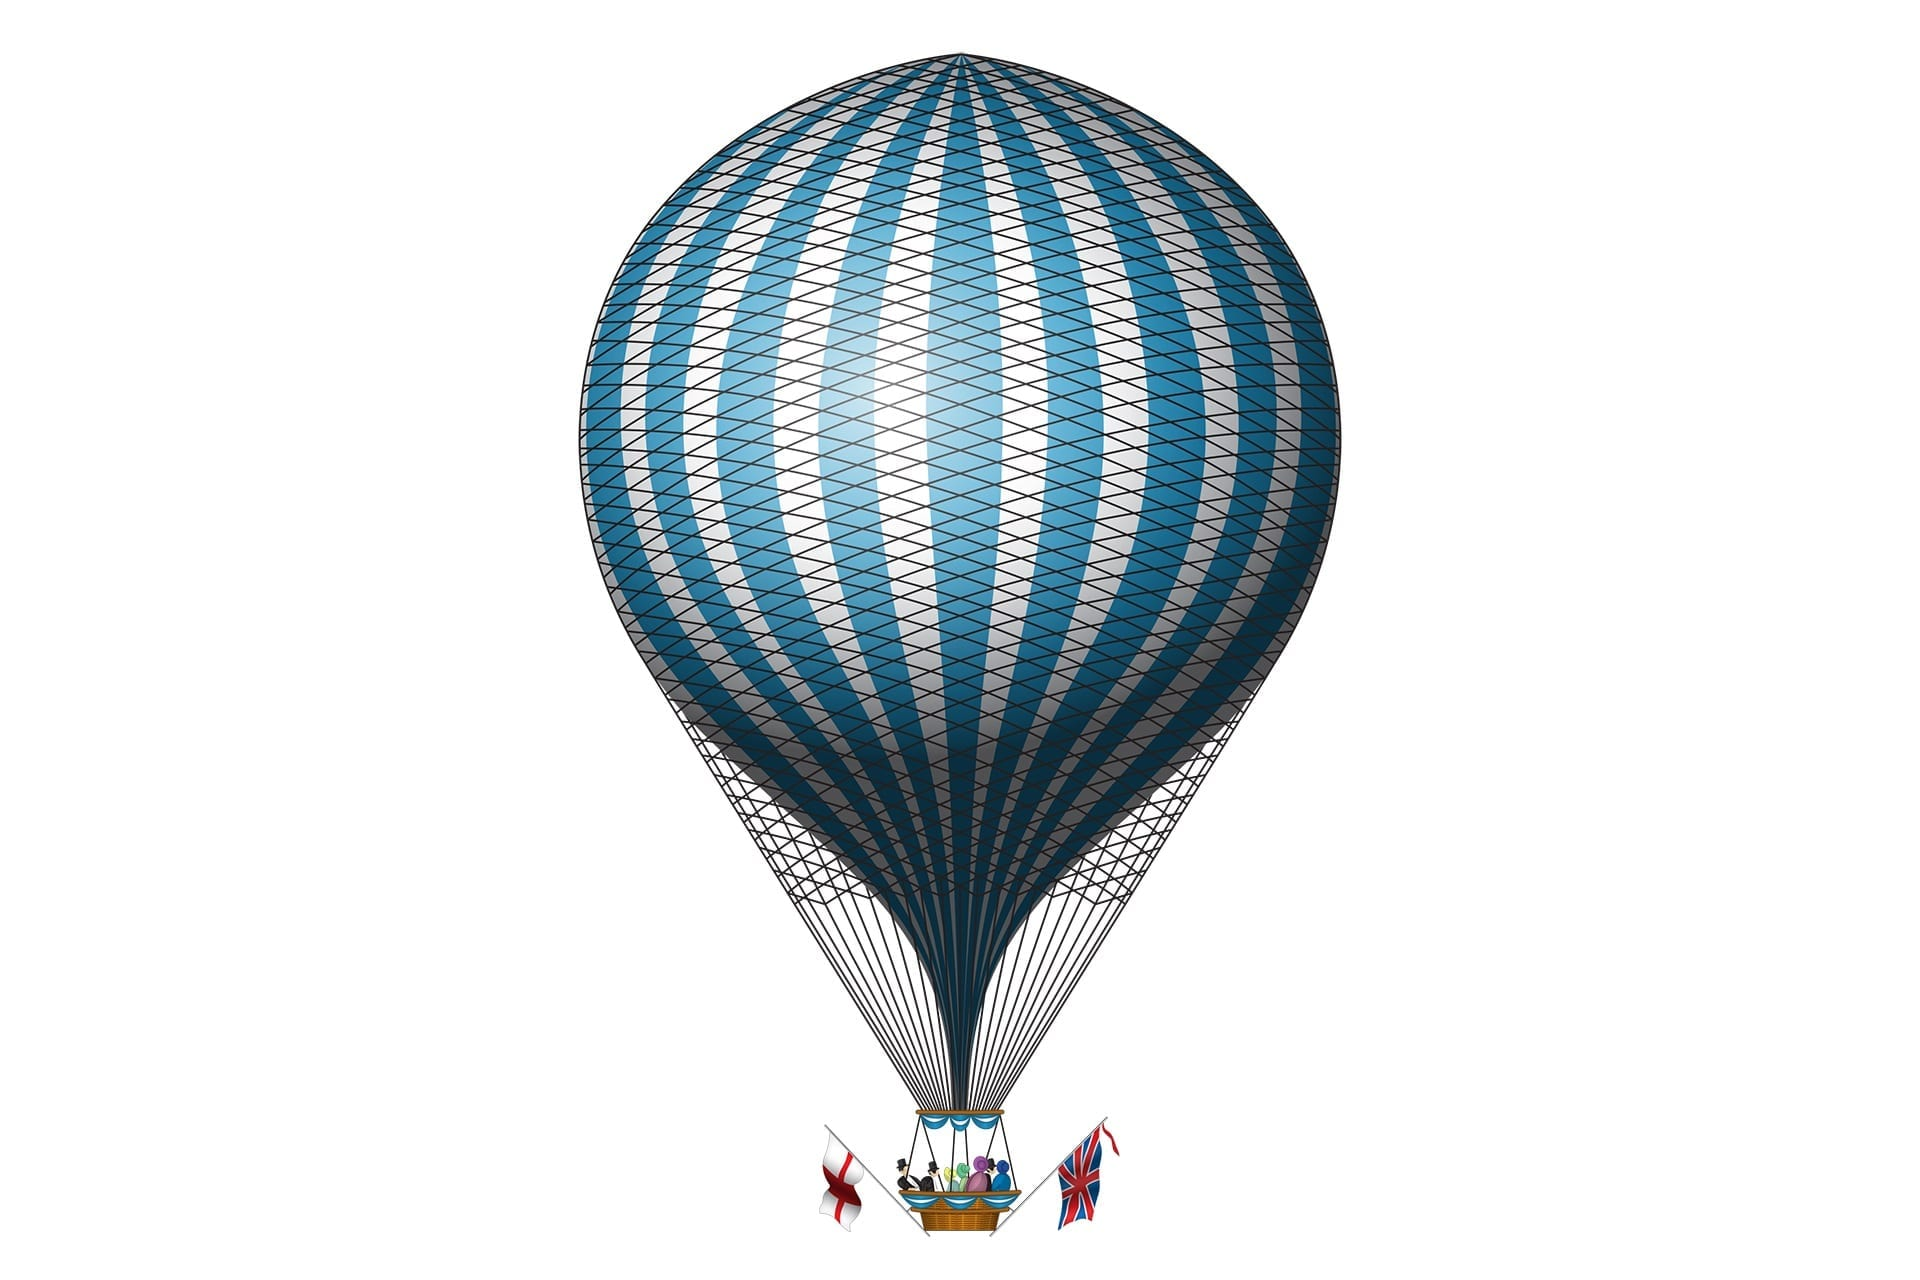 Balloon after vectorizing